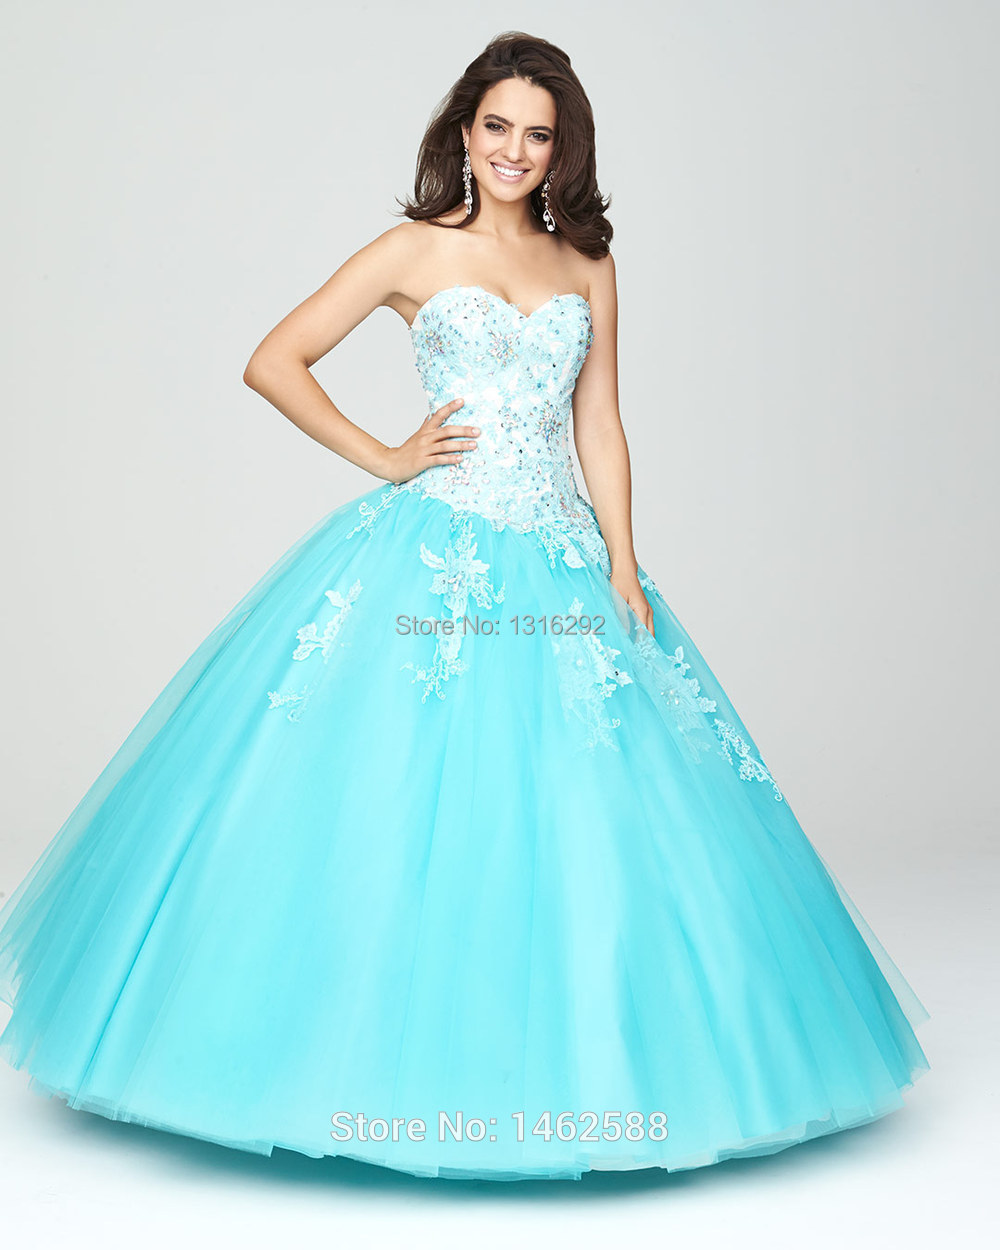 Awesome Dresses For Sweet 16 Party Illustration - All Wedding ...